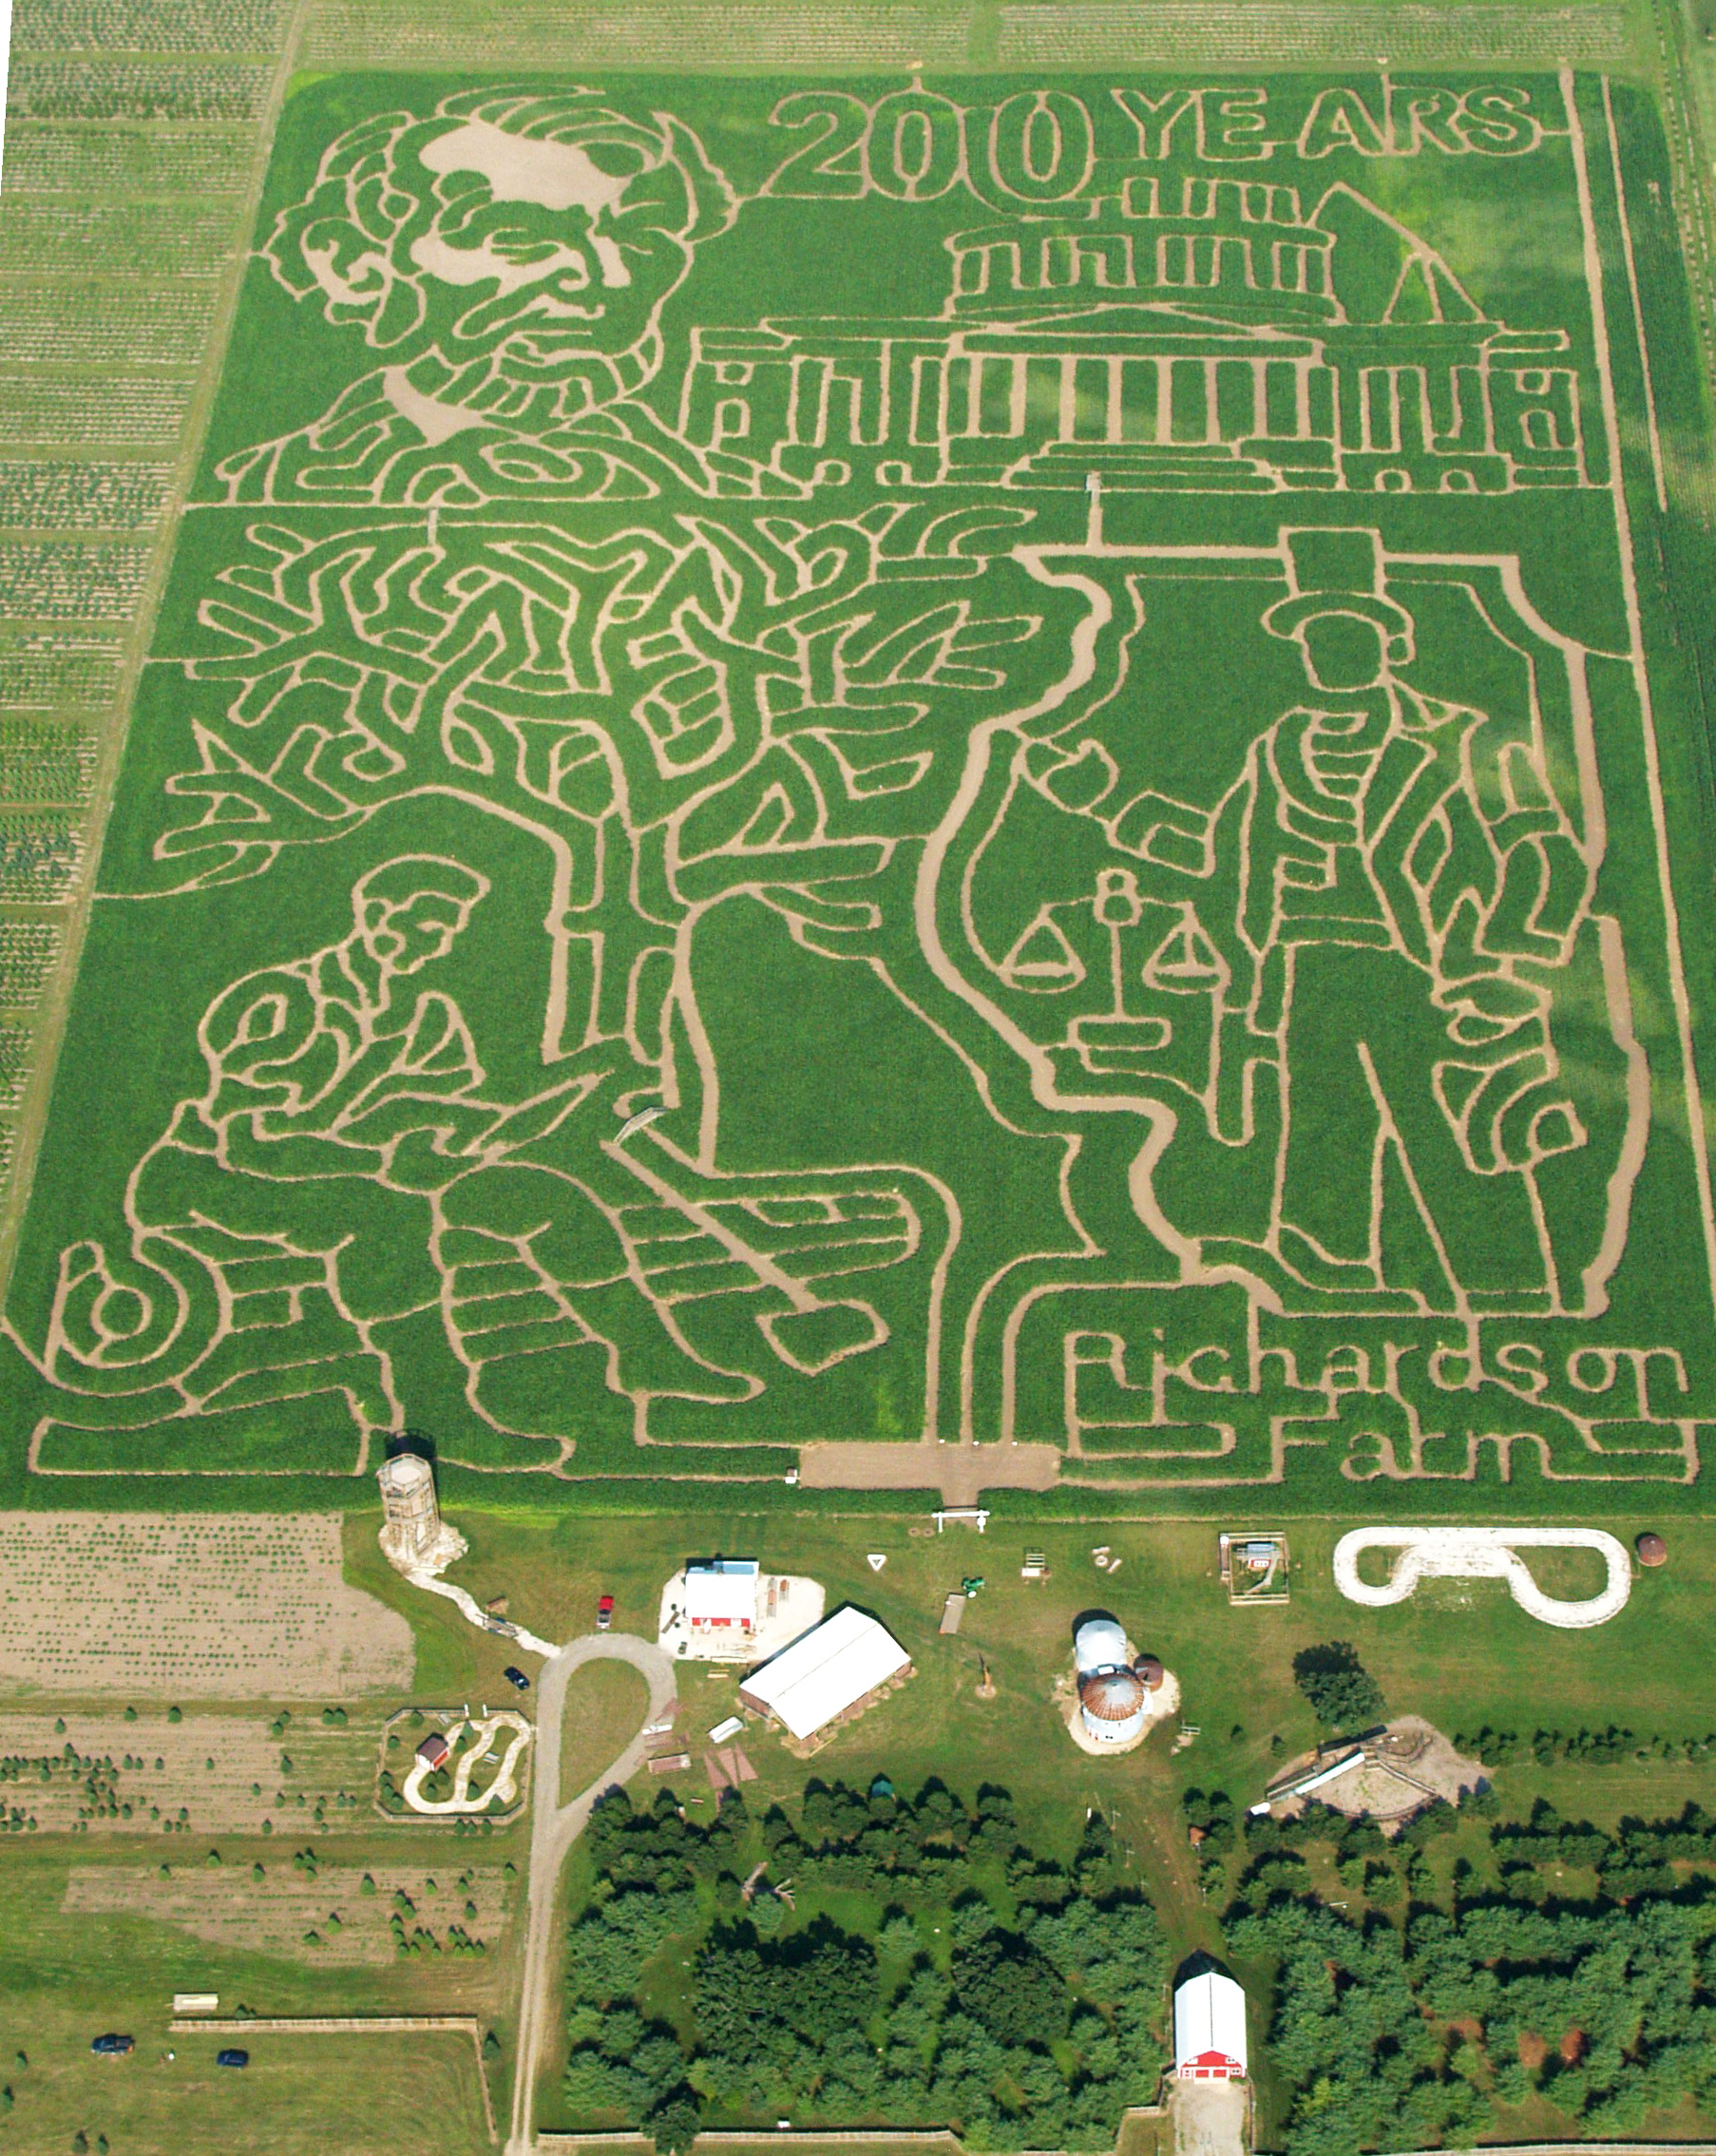 2009 Corn Maze - 200 Years of Abraham Lincoln